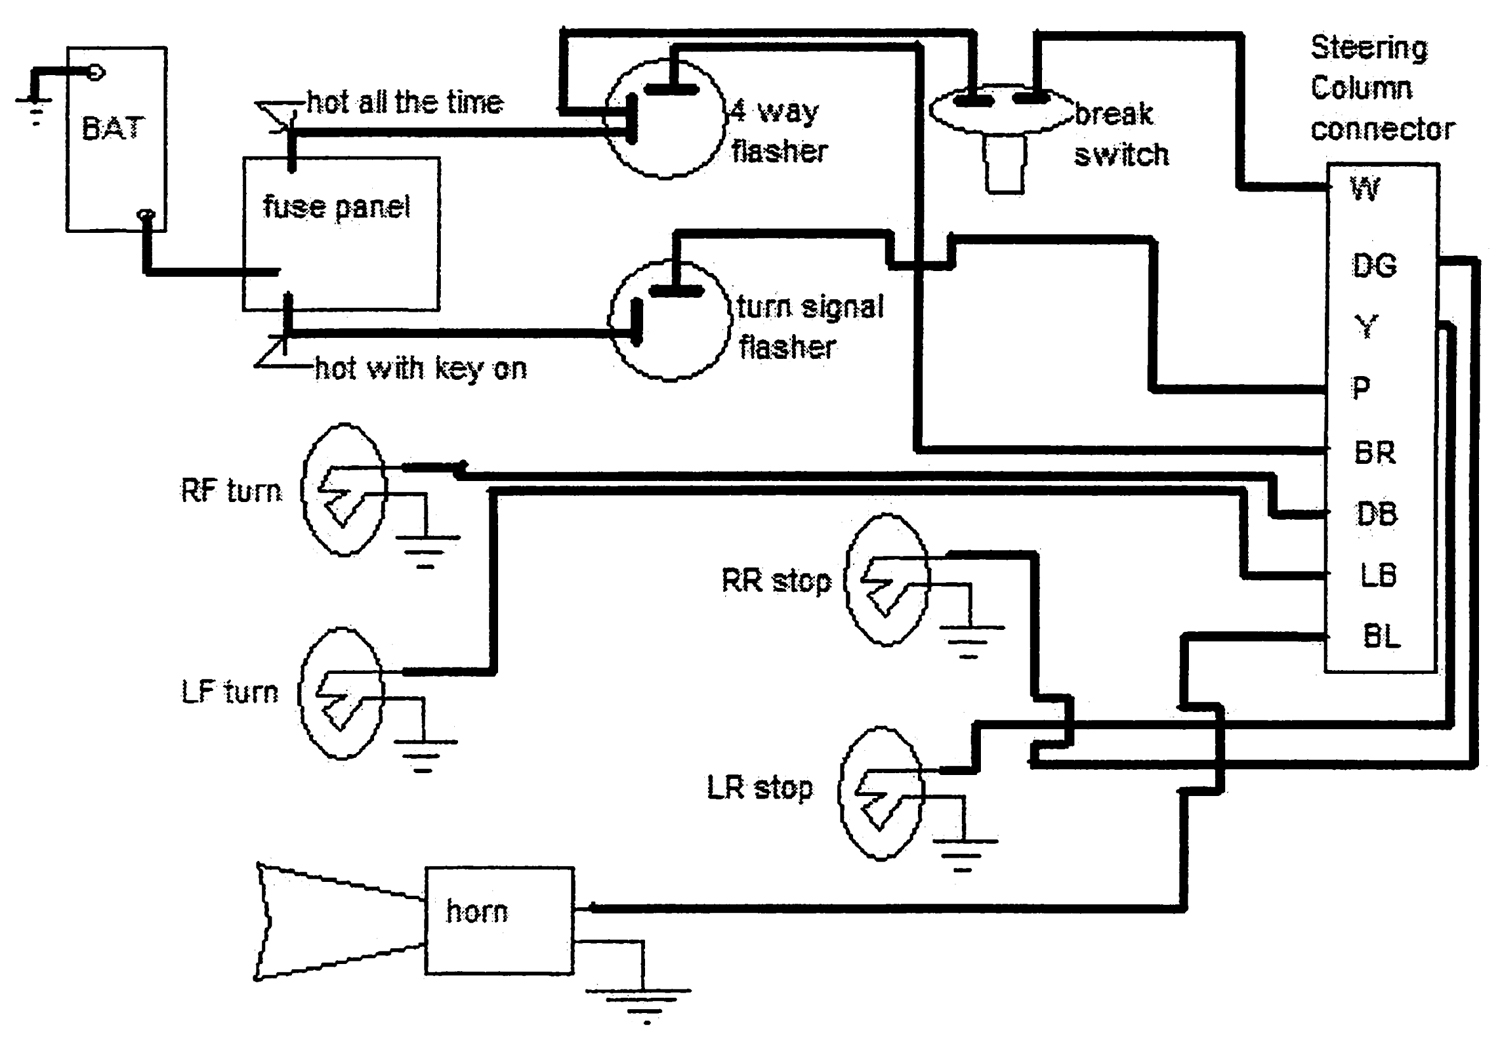 elect sycmatic tech tips 66 impala wiring diagram at virtualis.co